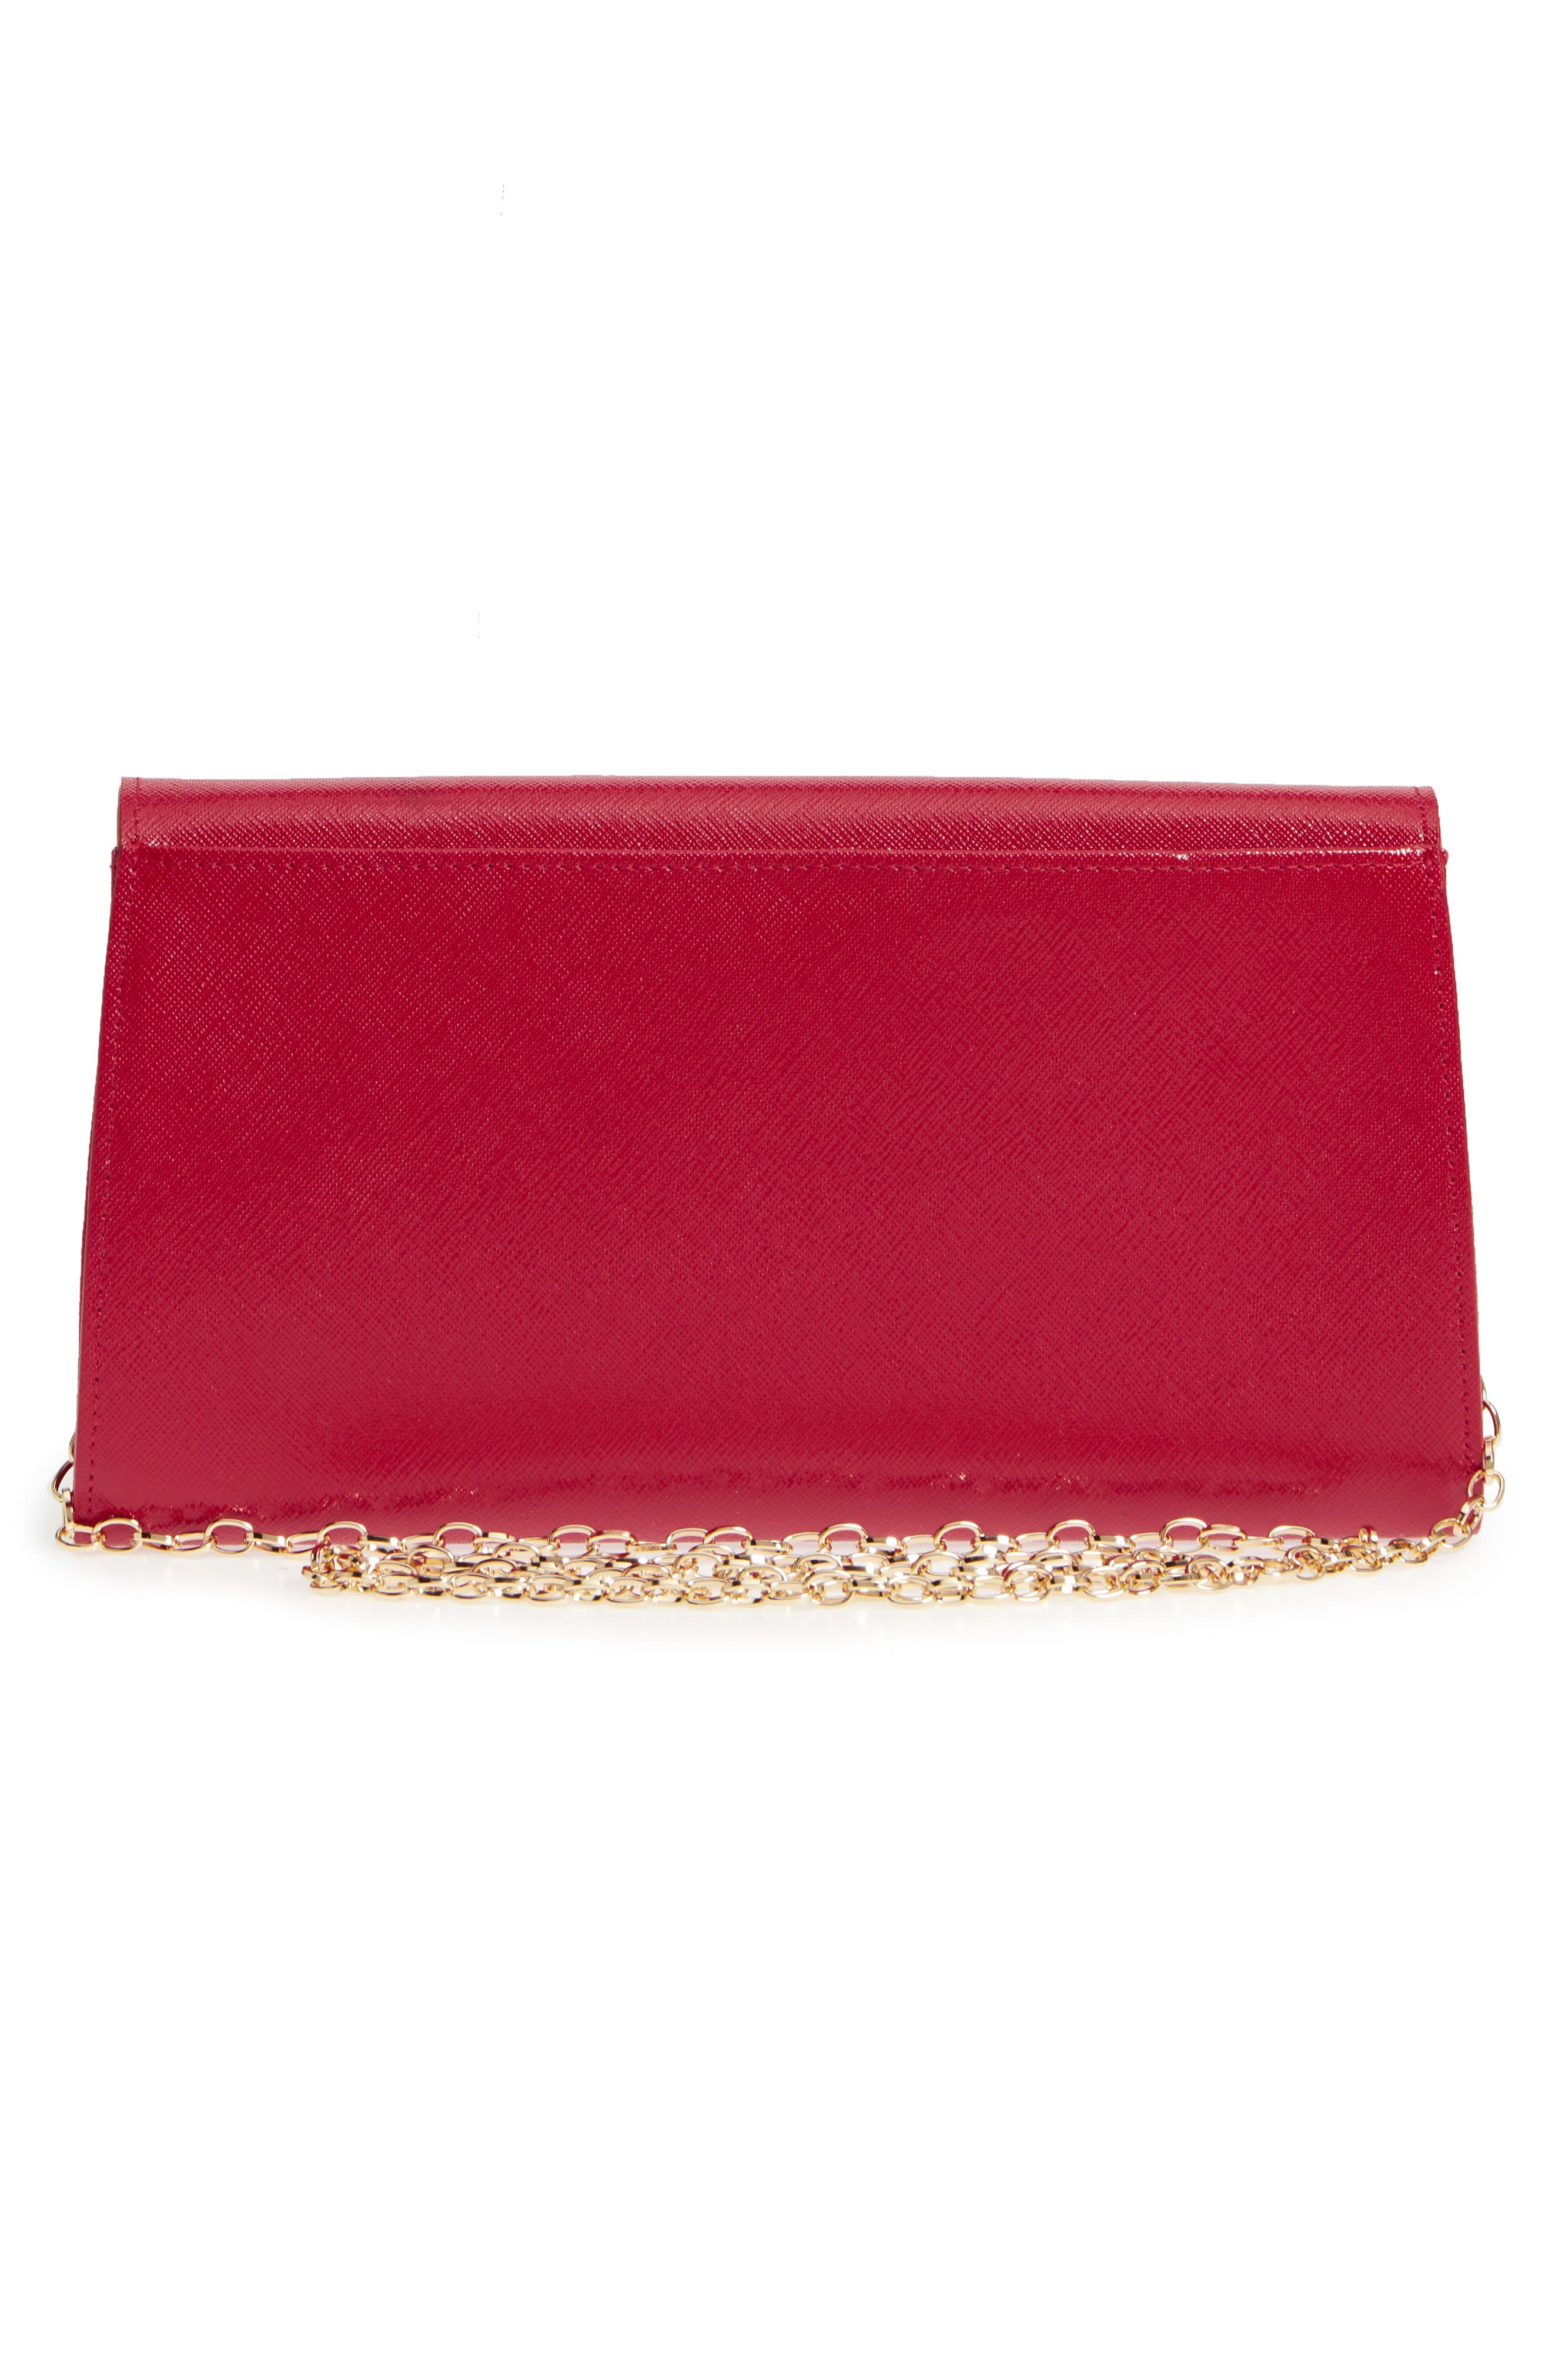 Leather Clutch,                             Alternate thumbnail 3, color,                             RED JESTER